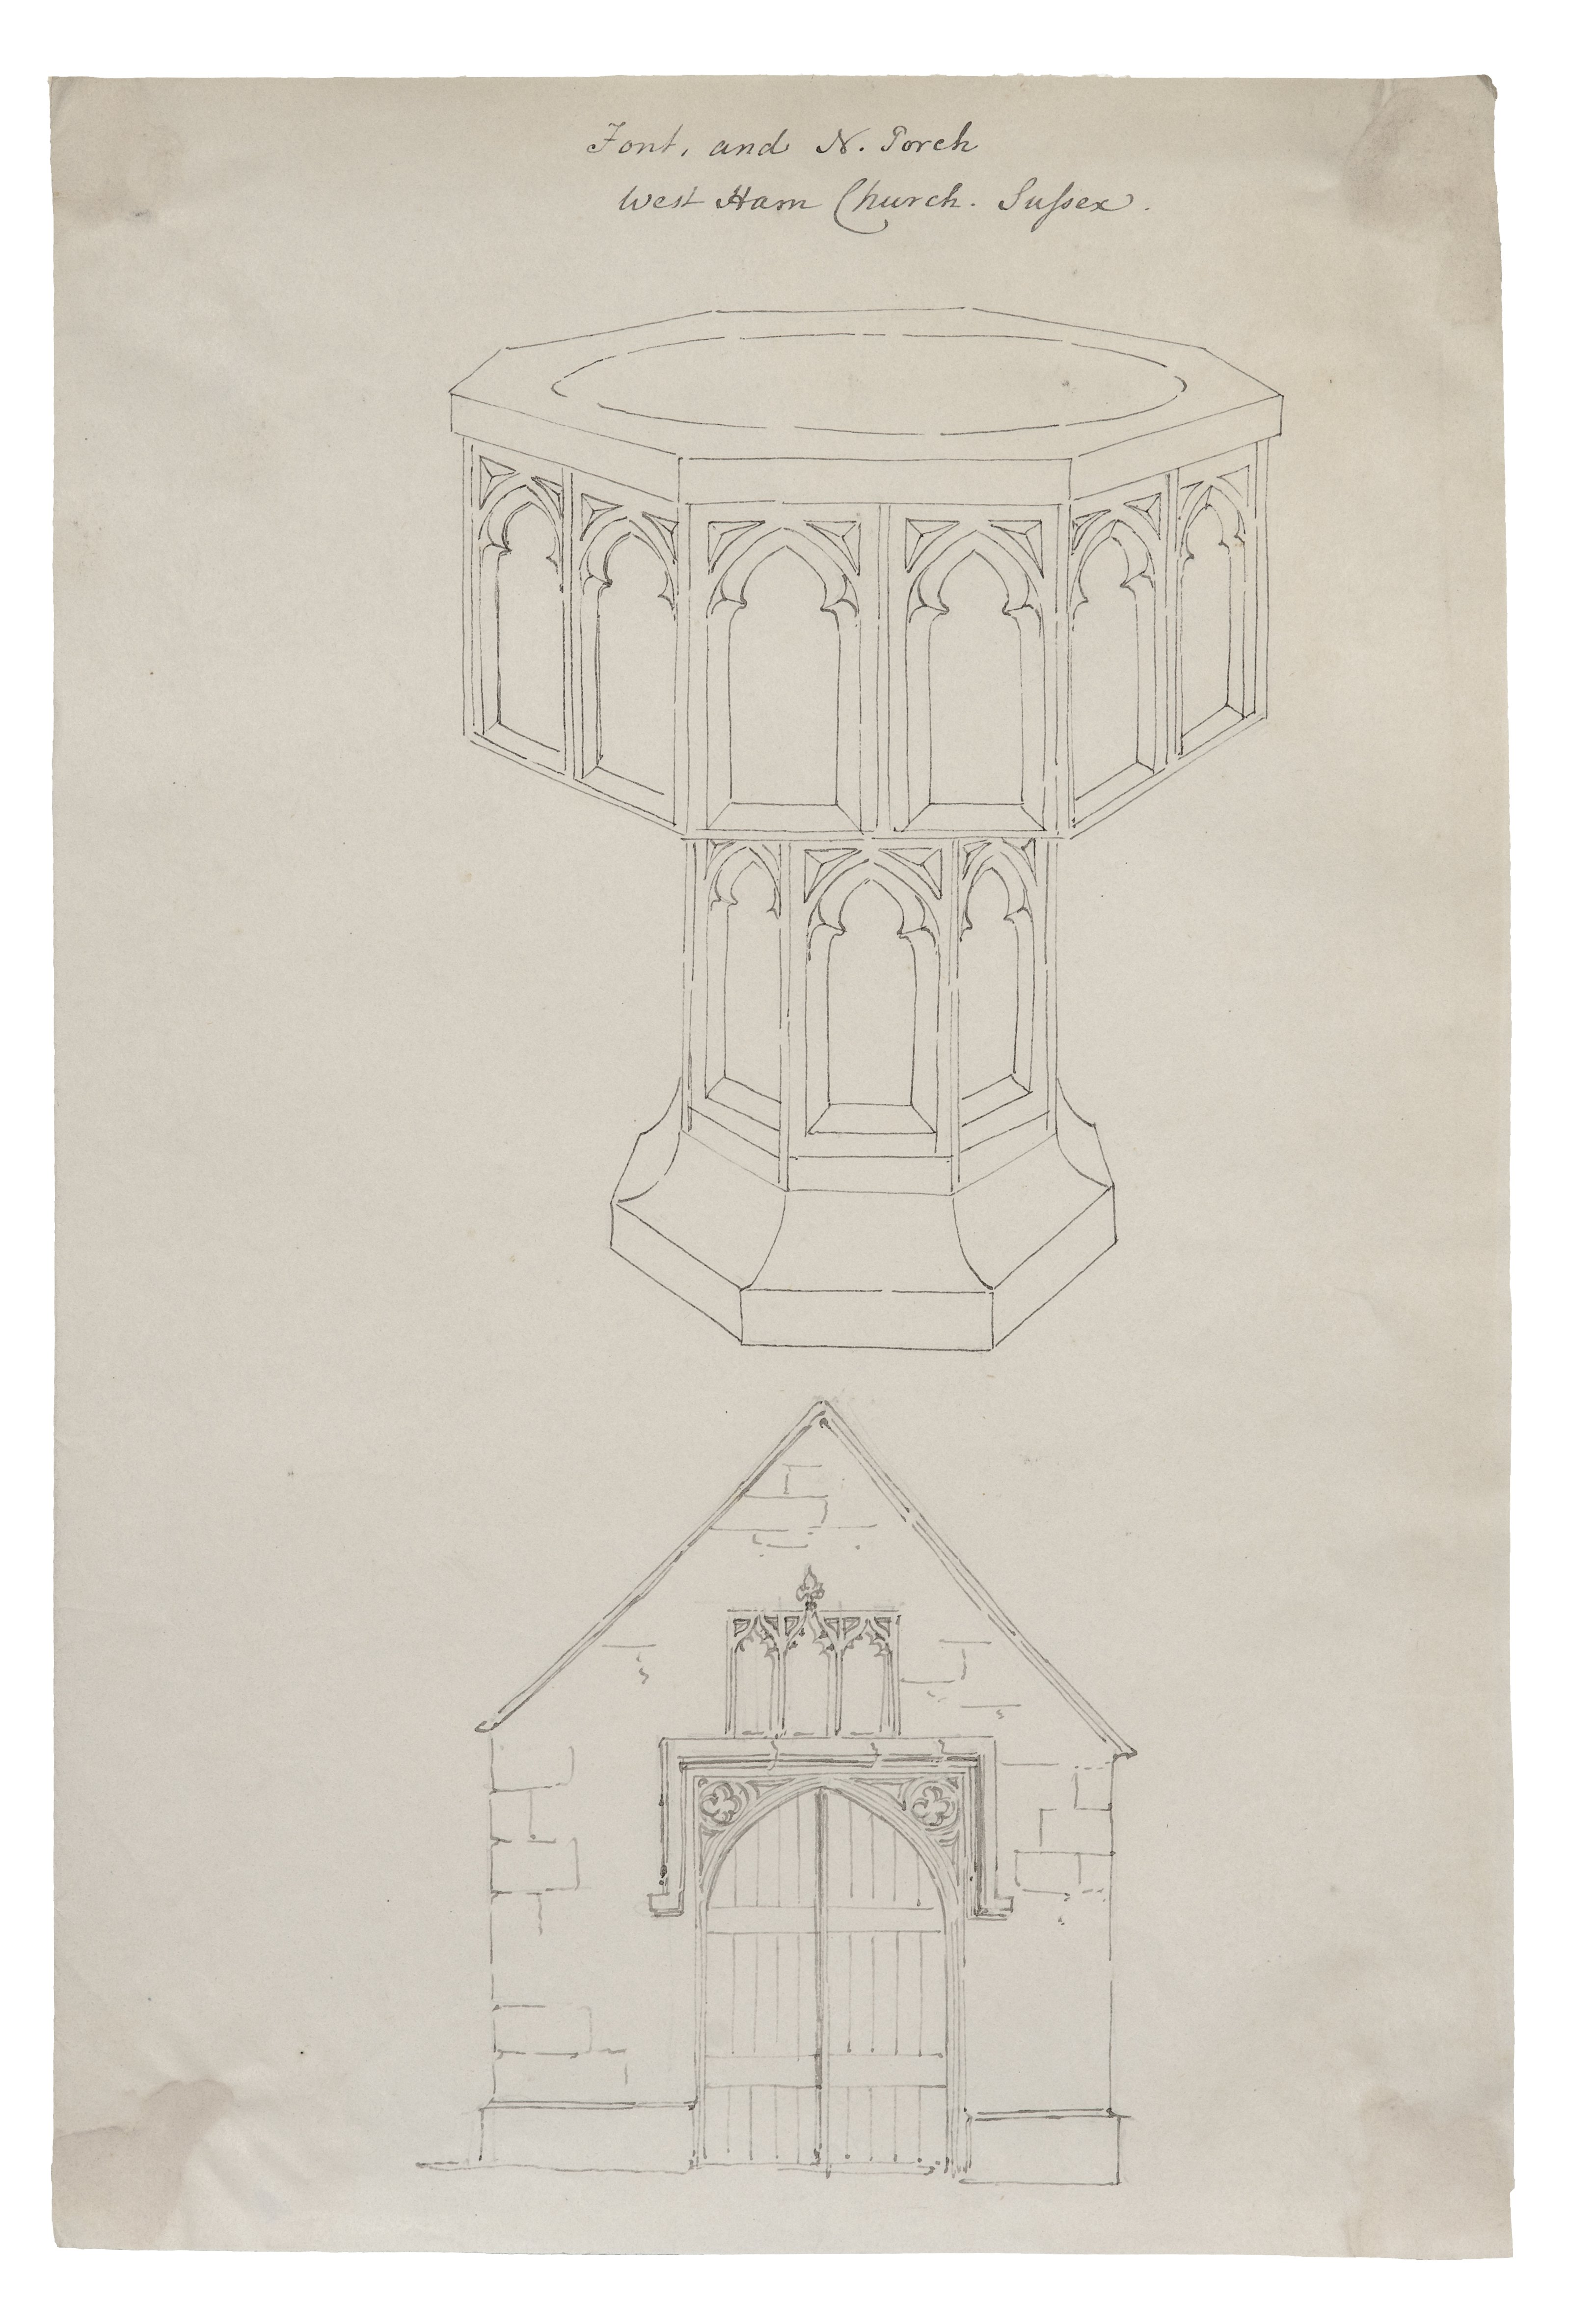 An 18th-19th Century British Architectural Study Drawing Font and N. Torch Westham Church Sussex